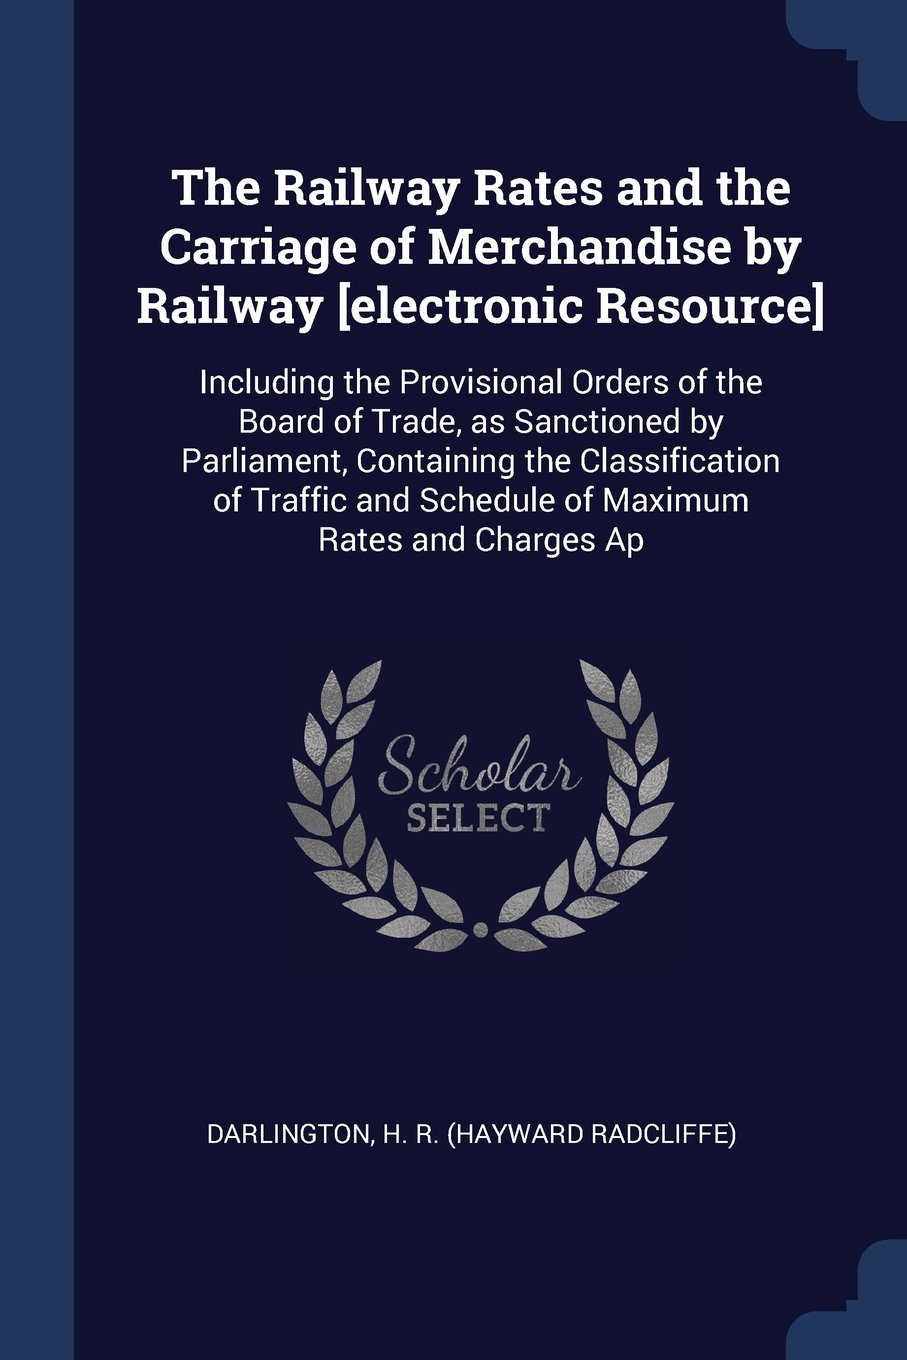 Download The Railway Rates and the Carriage of Merchandise by Railway [electronic Resource]: Including the Provisional Orders of the Board of Trade, as ... and Schedule of Maximum Rates and Charges Ap ebook